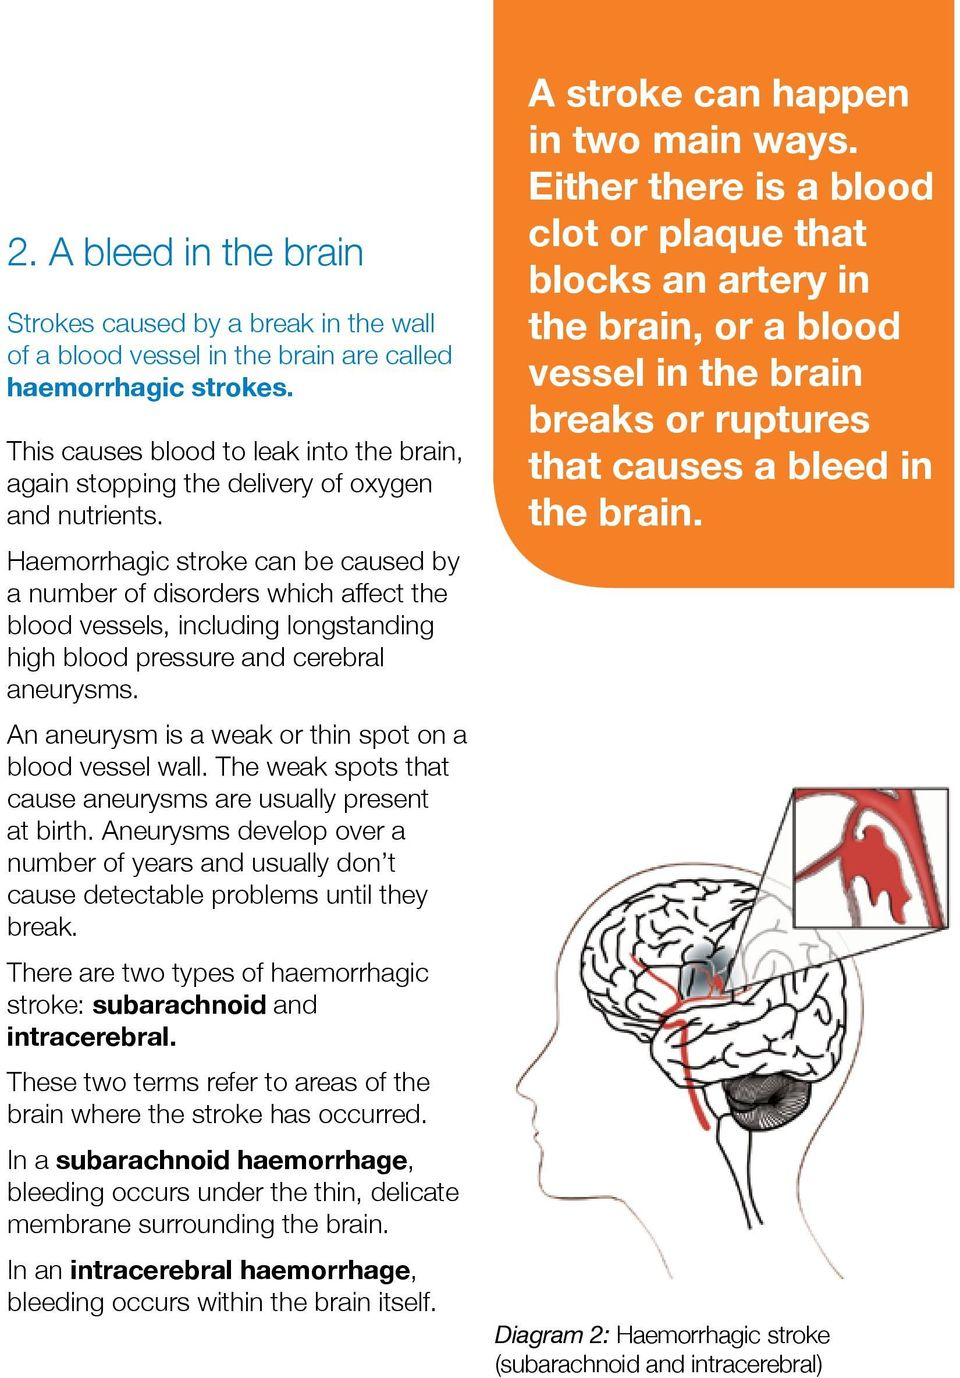 Haemorrhagic stroke can be caused by a number of disorders which affect the blood vessels, including longstanding high blood pressure and cerebral aneurysms.